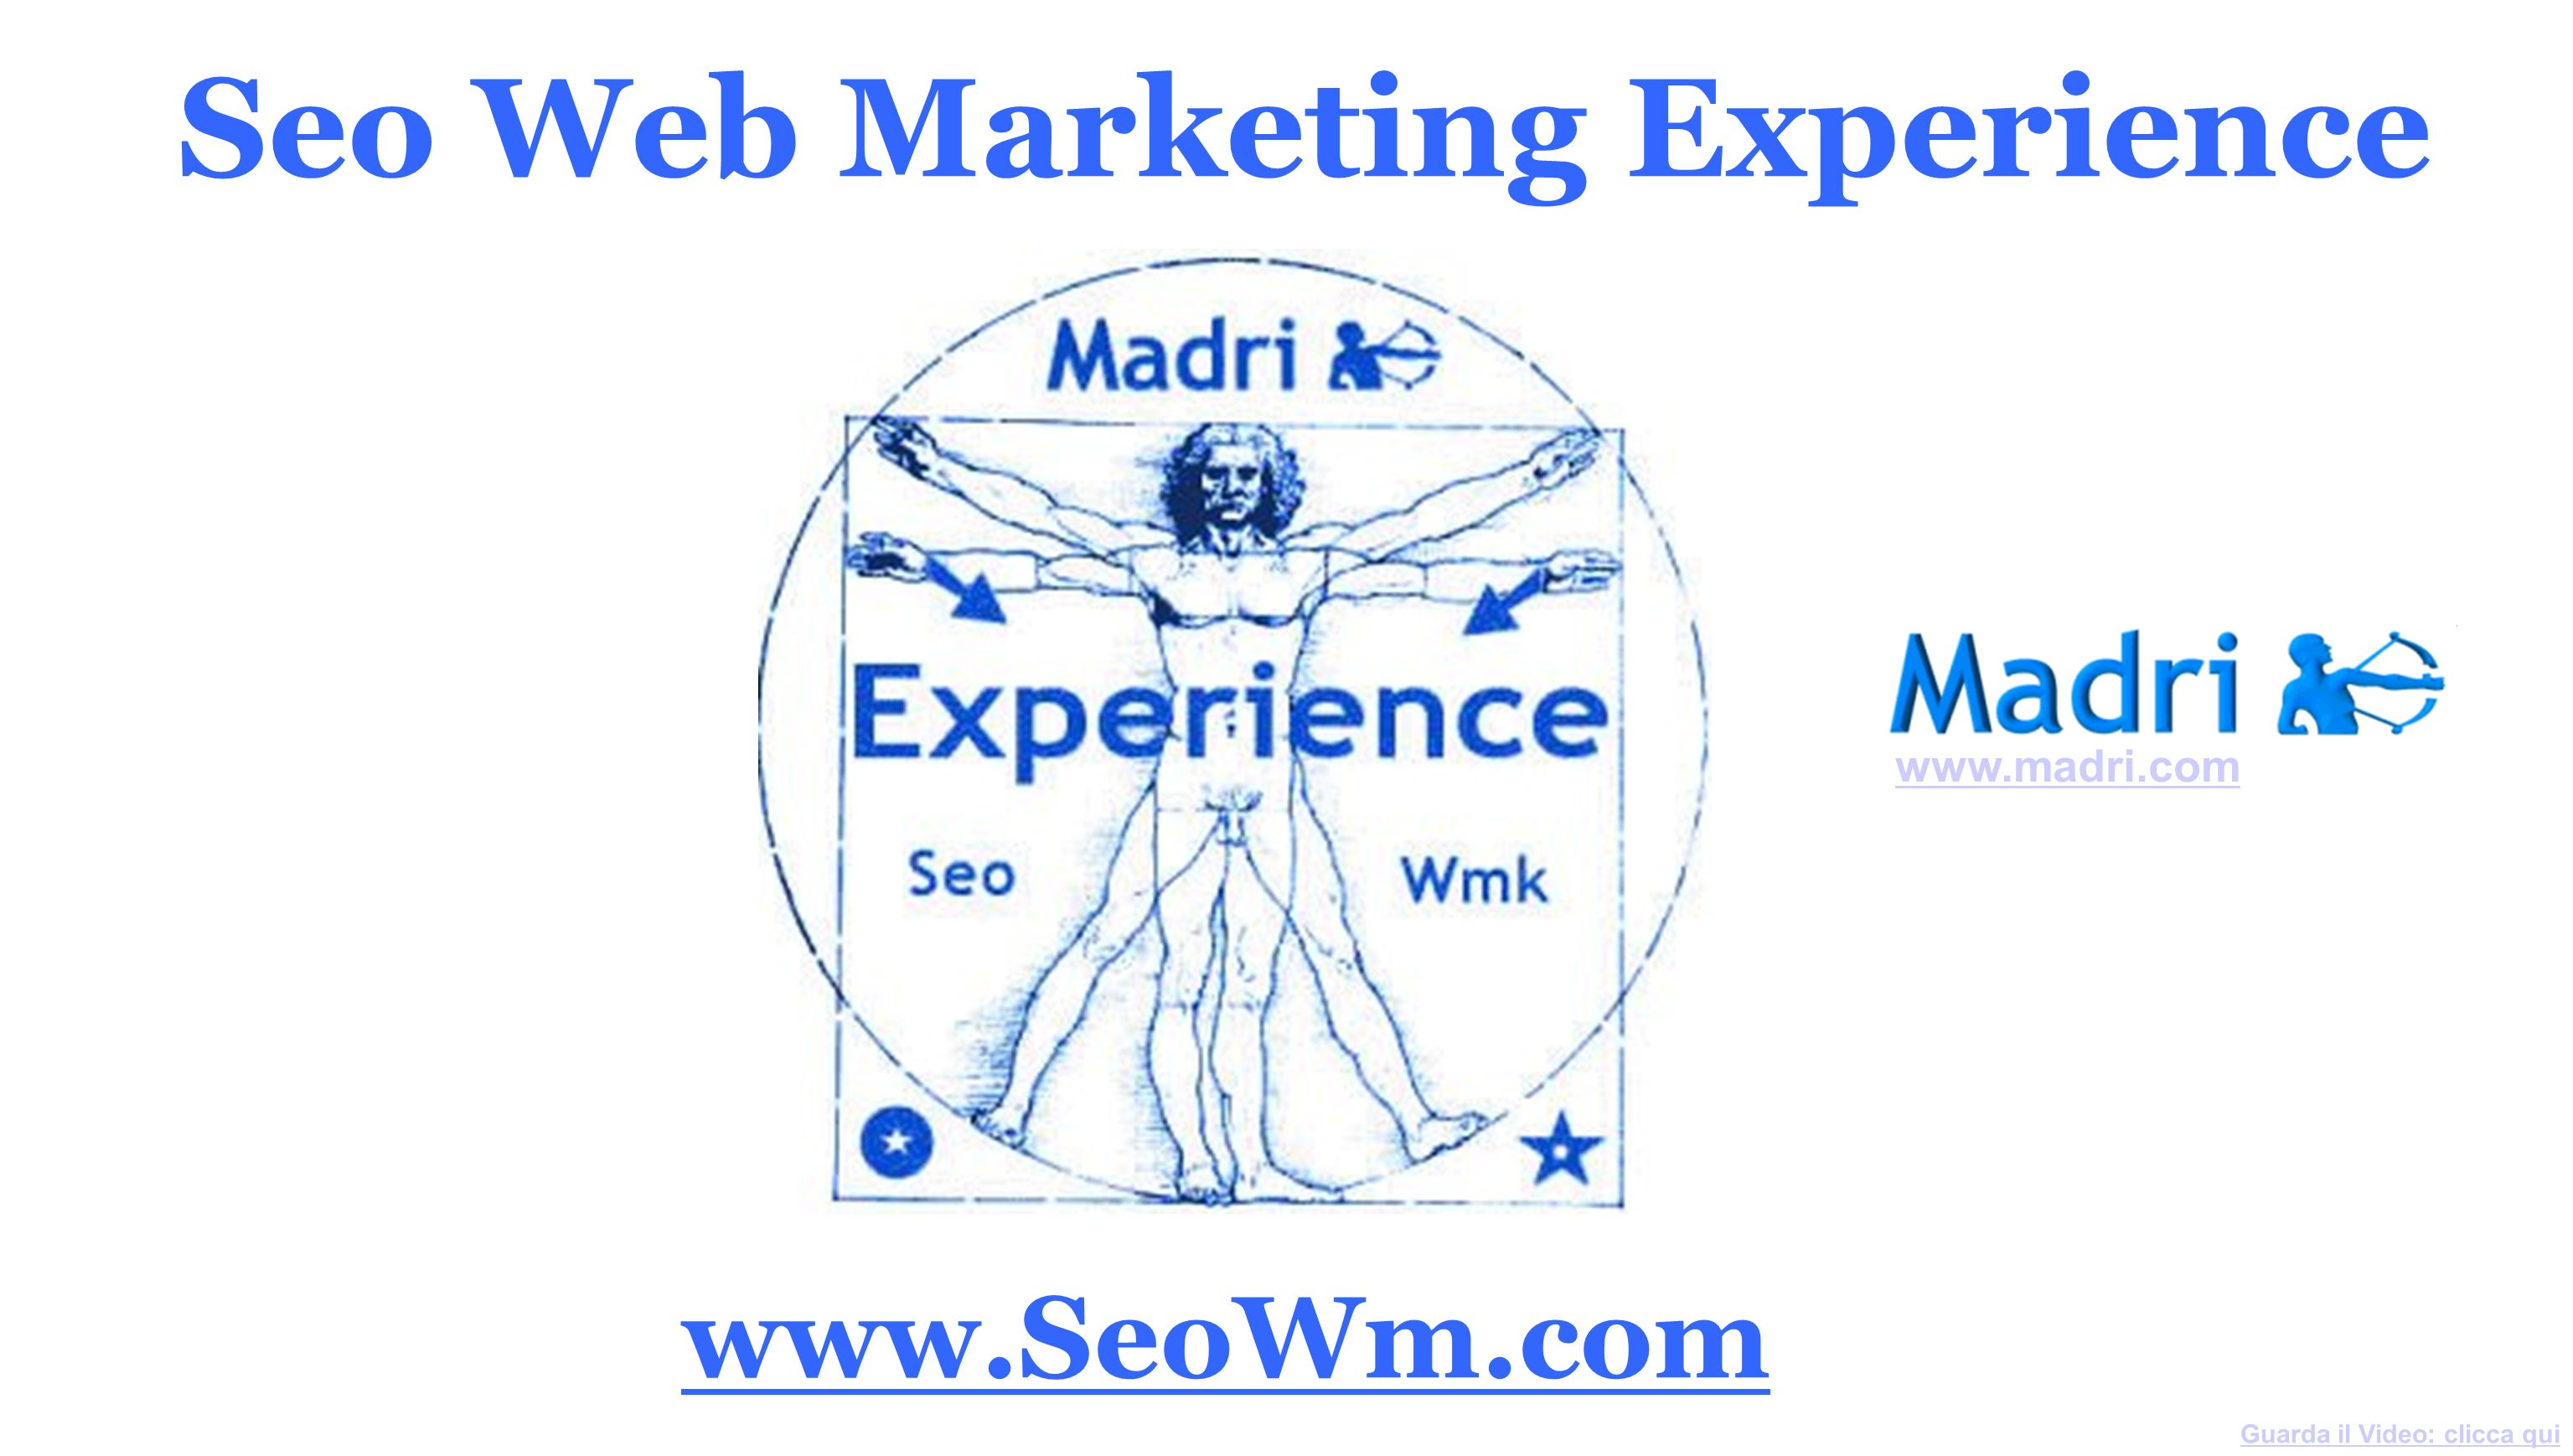 Seo Web Marketing Experience